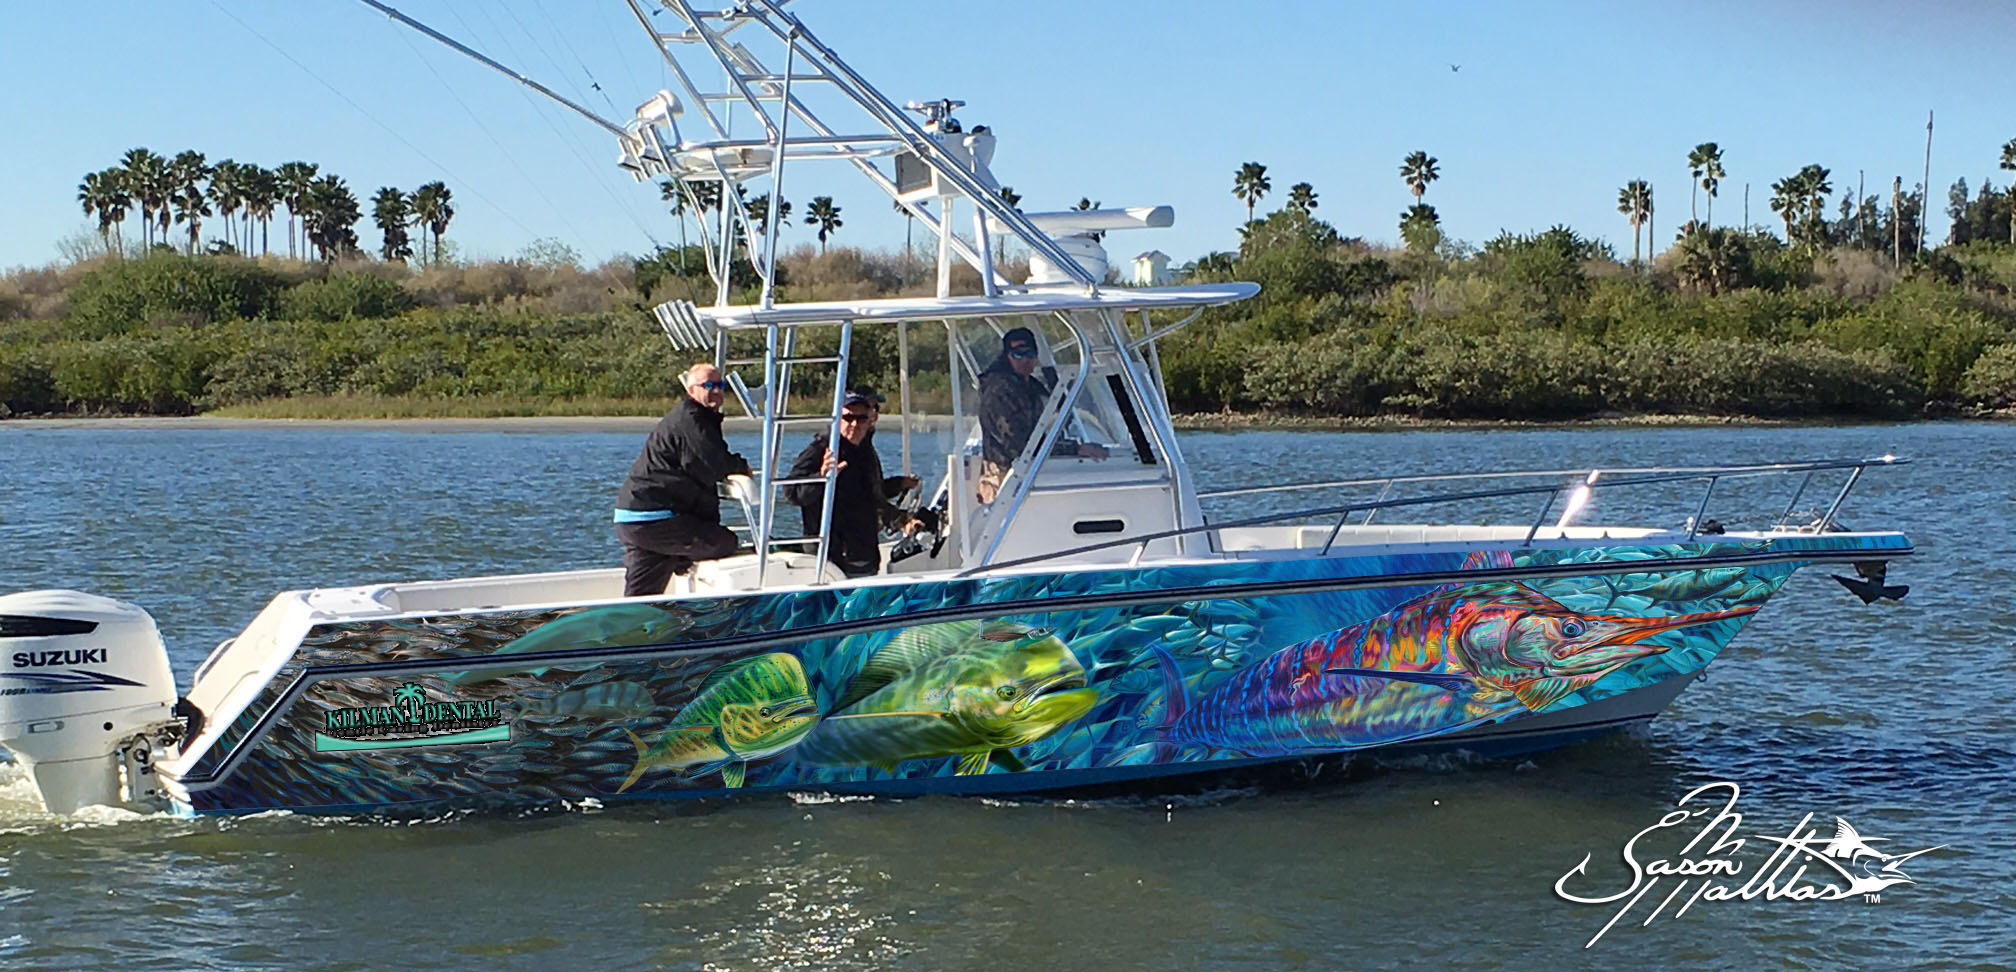 jason-mathias-baot-wrap-art-and-designs-gamefish.jpg